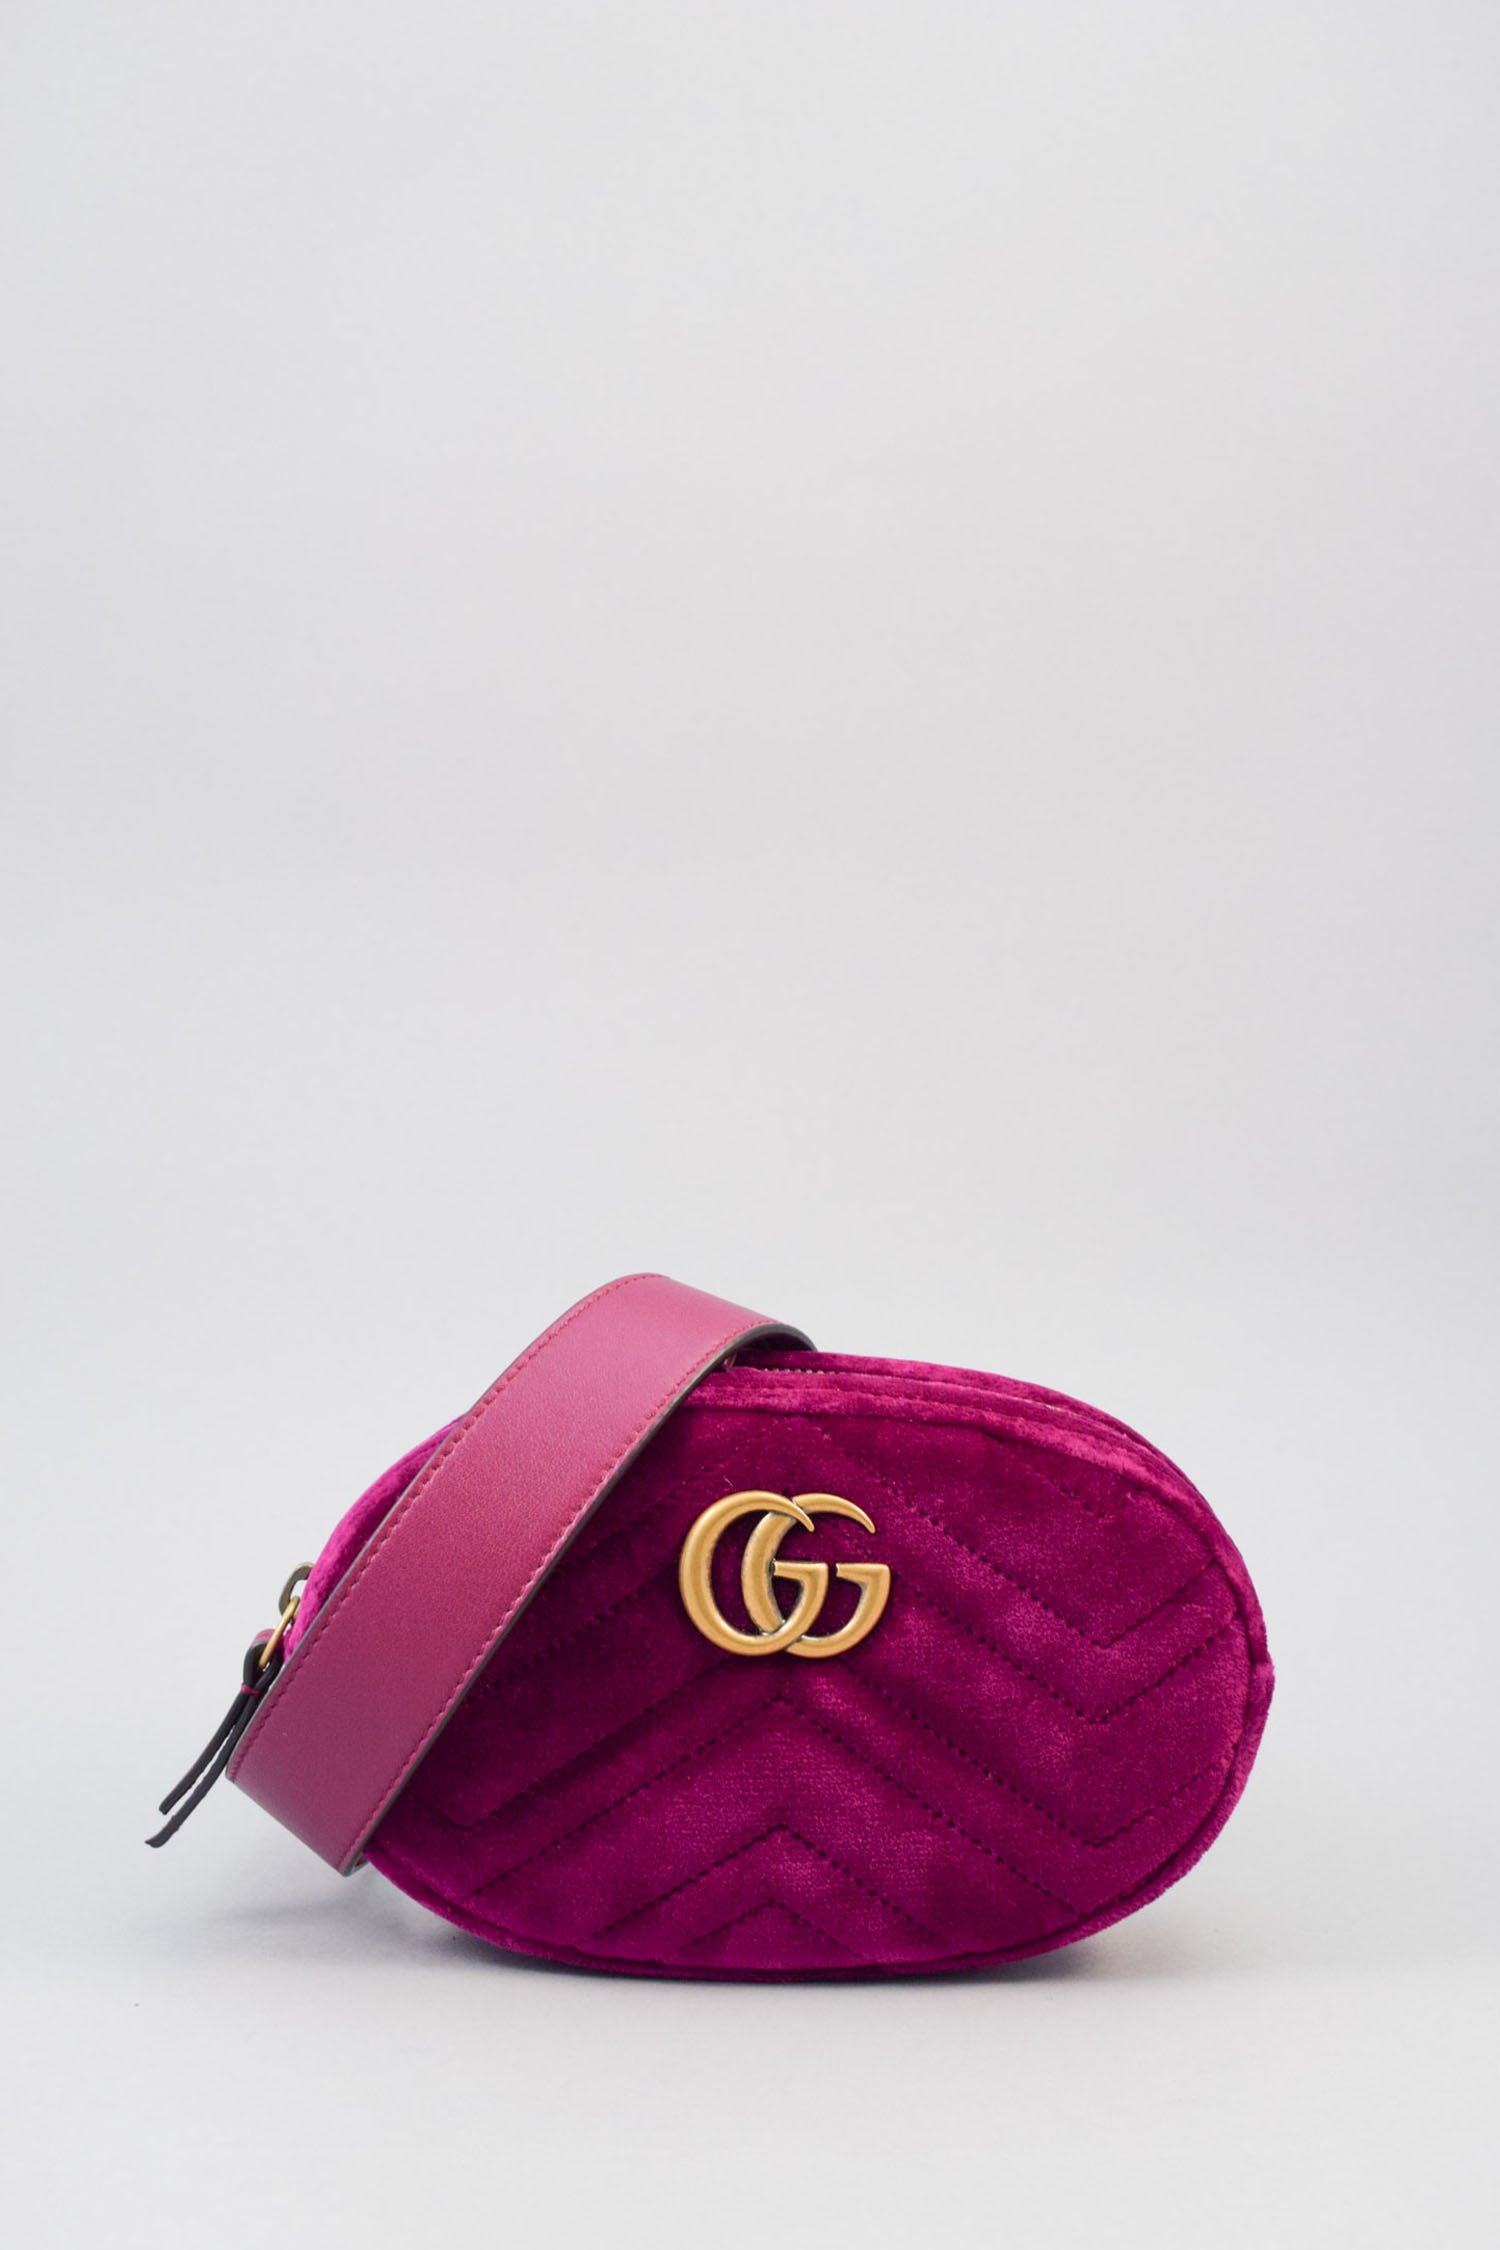 Gucci Bordeaux Velvet GG Marmont Belt Bag NWT